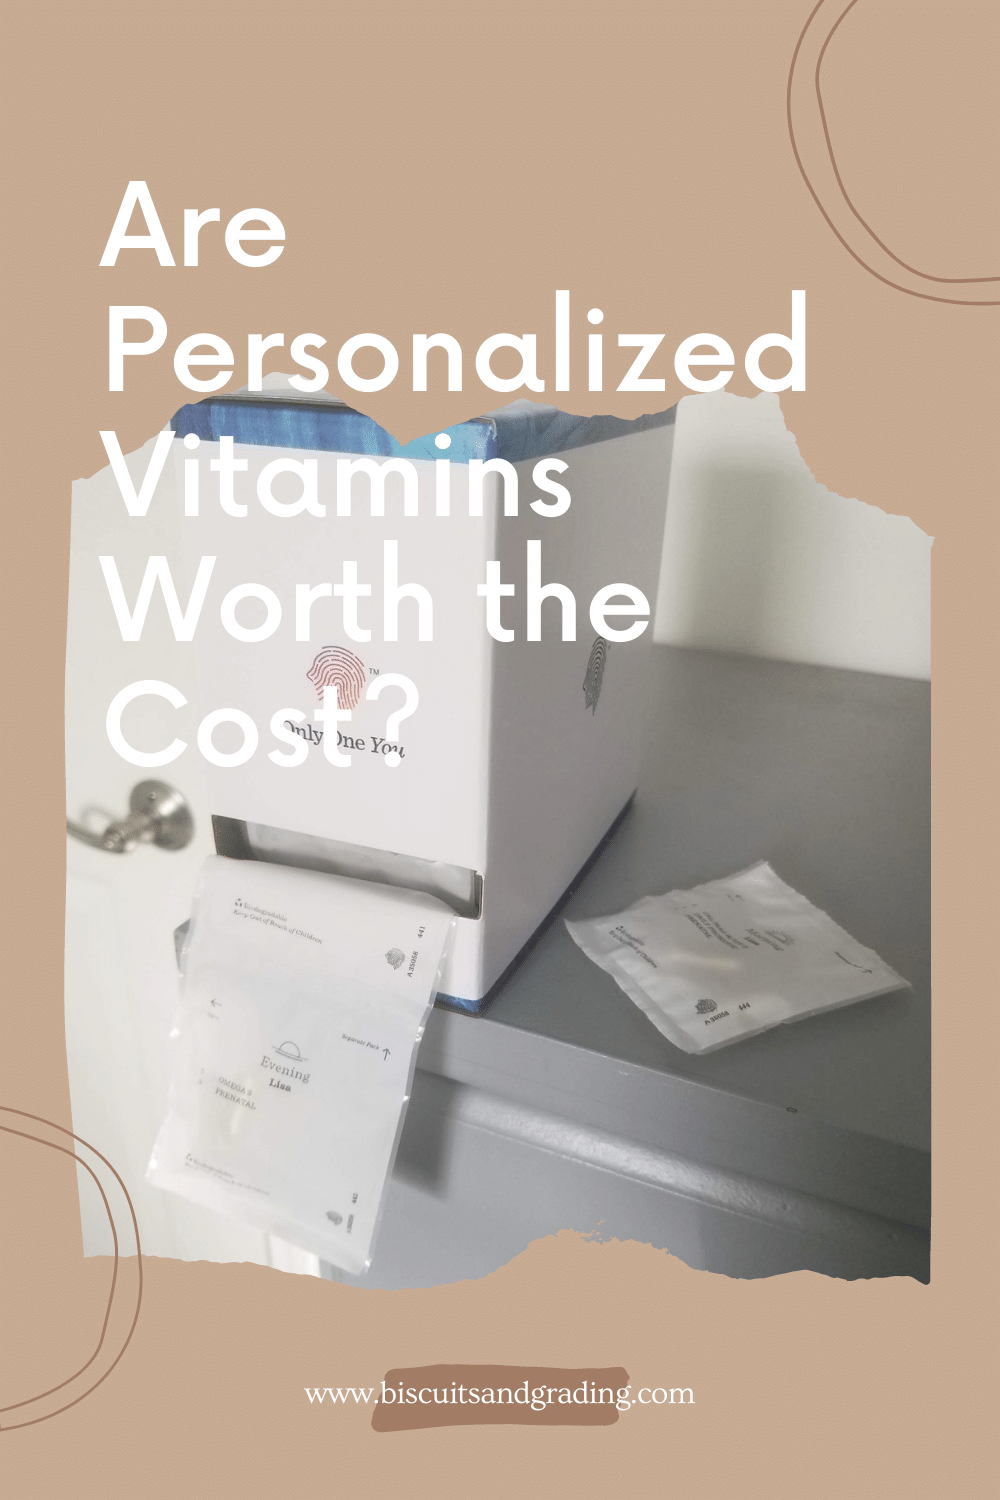 persona personalized vitamins worth the cost